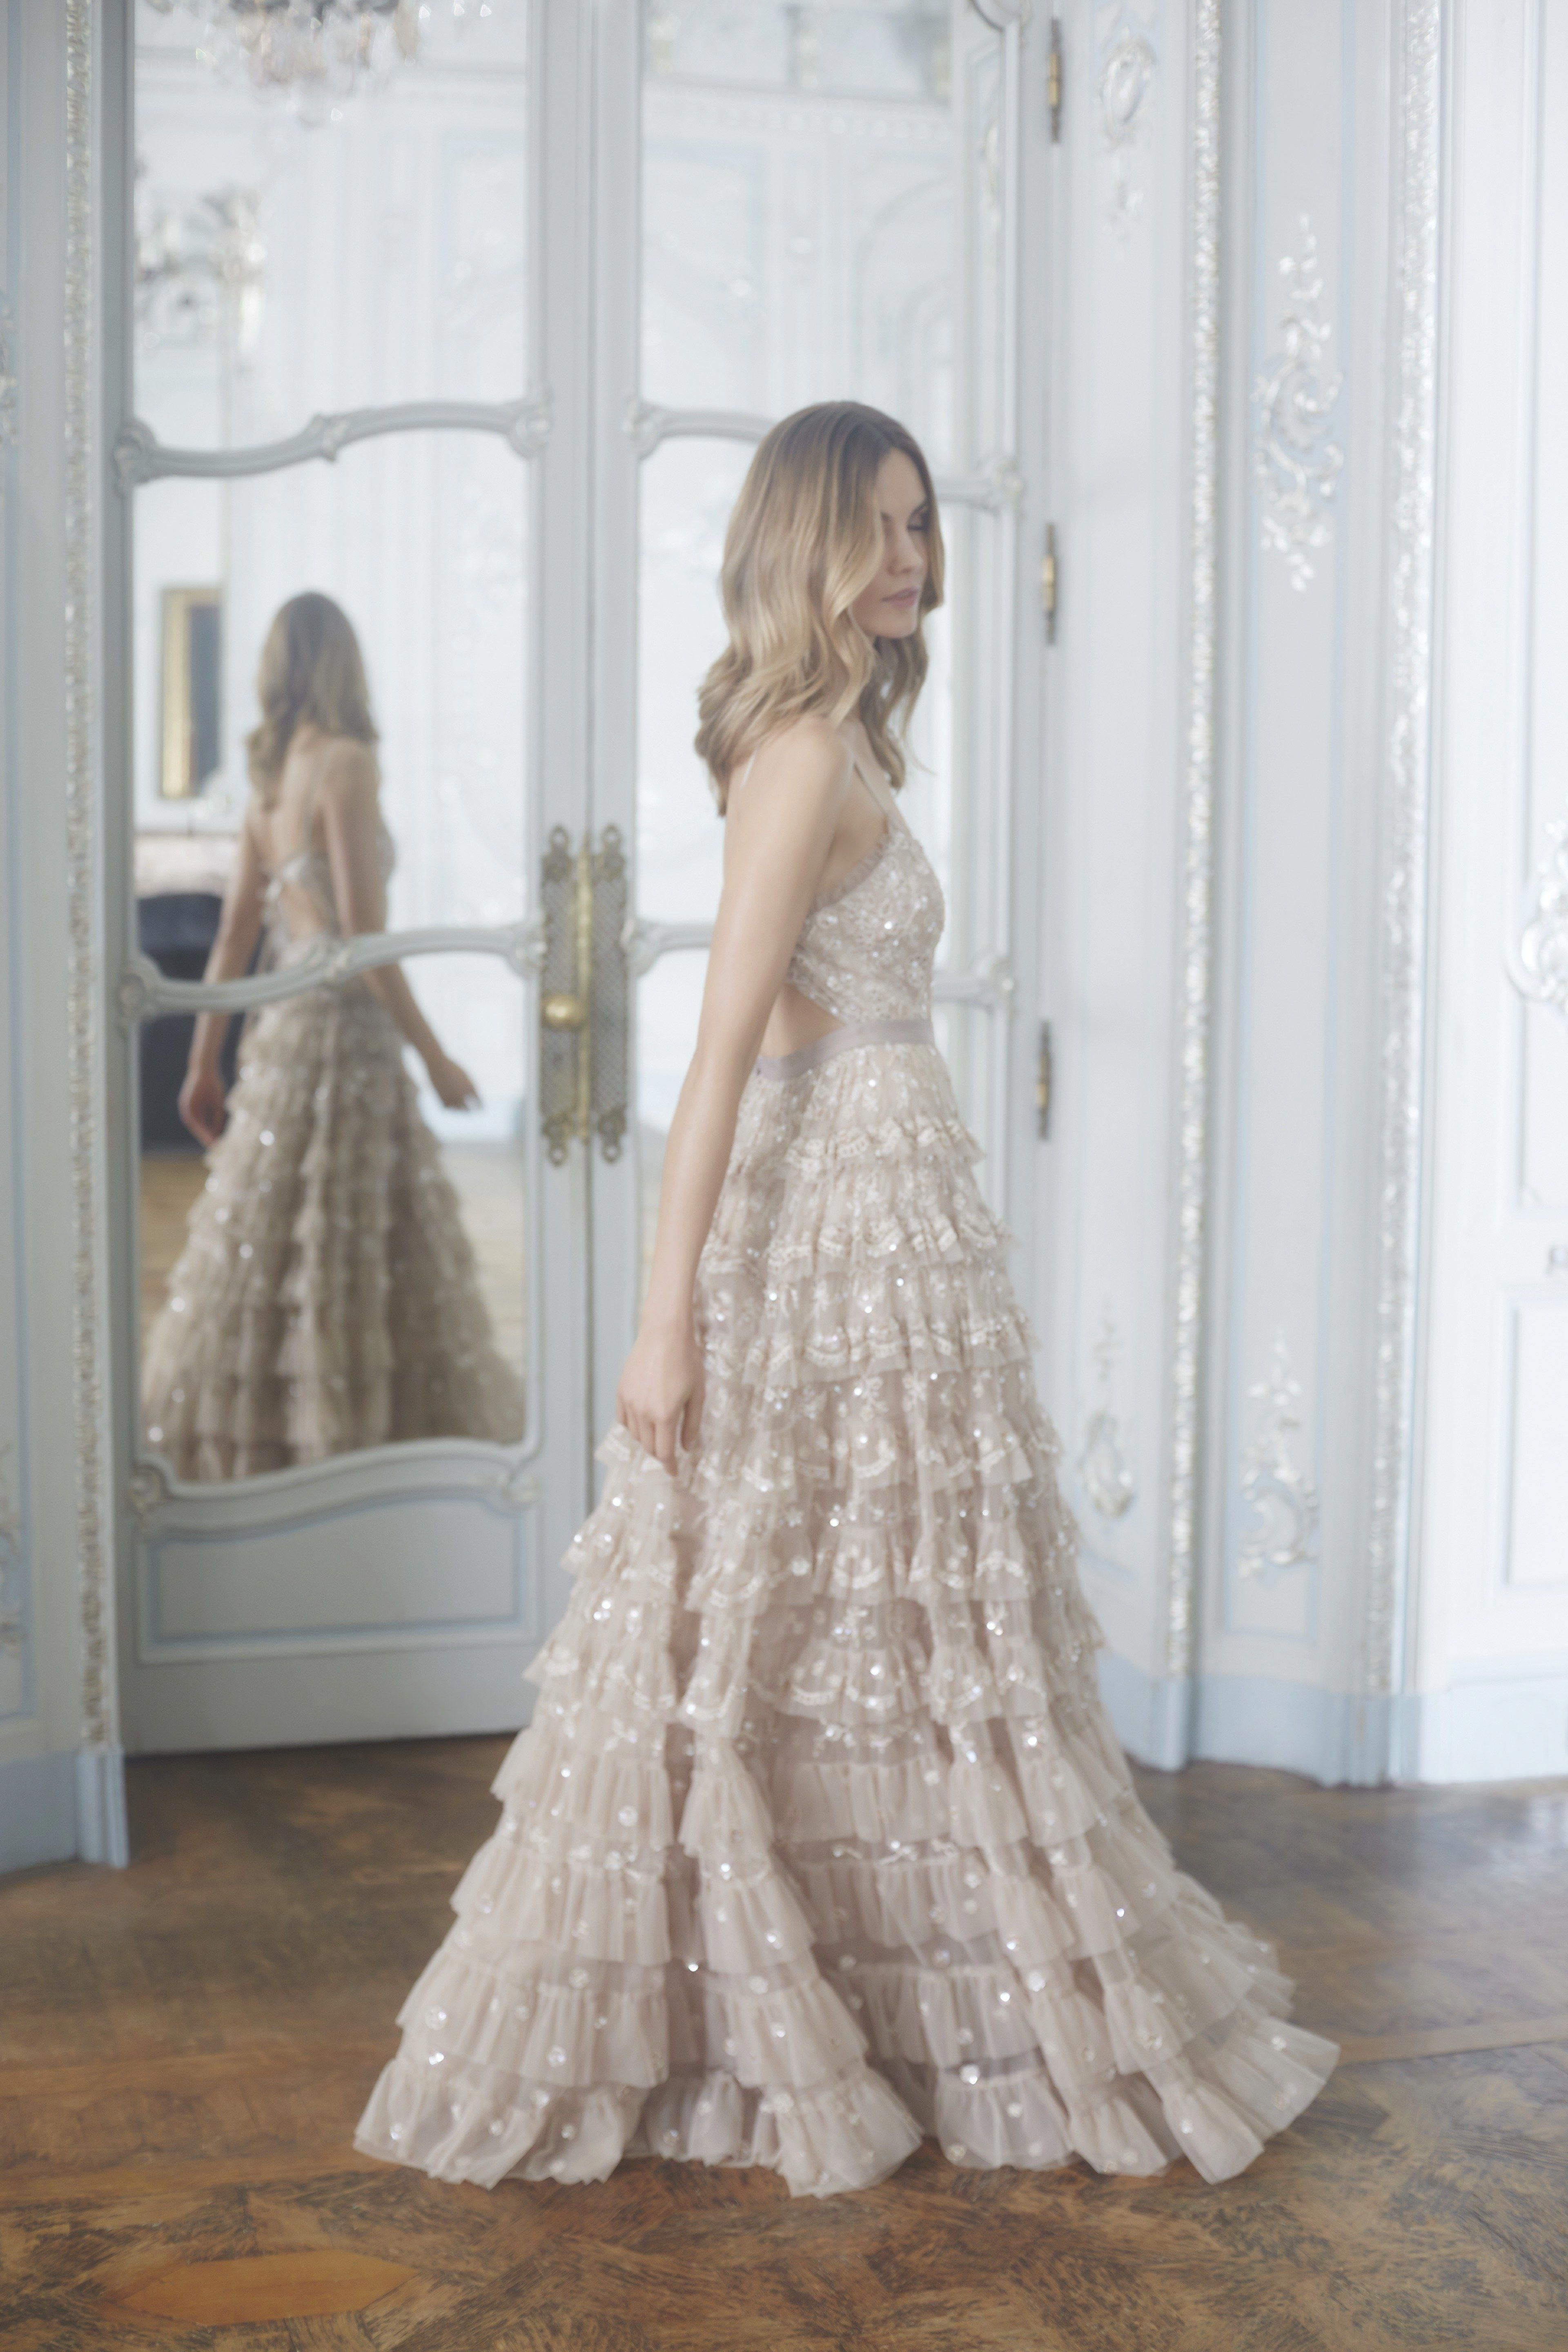 Needle u threadus new wedding dresses are something out of a